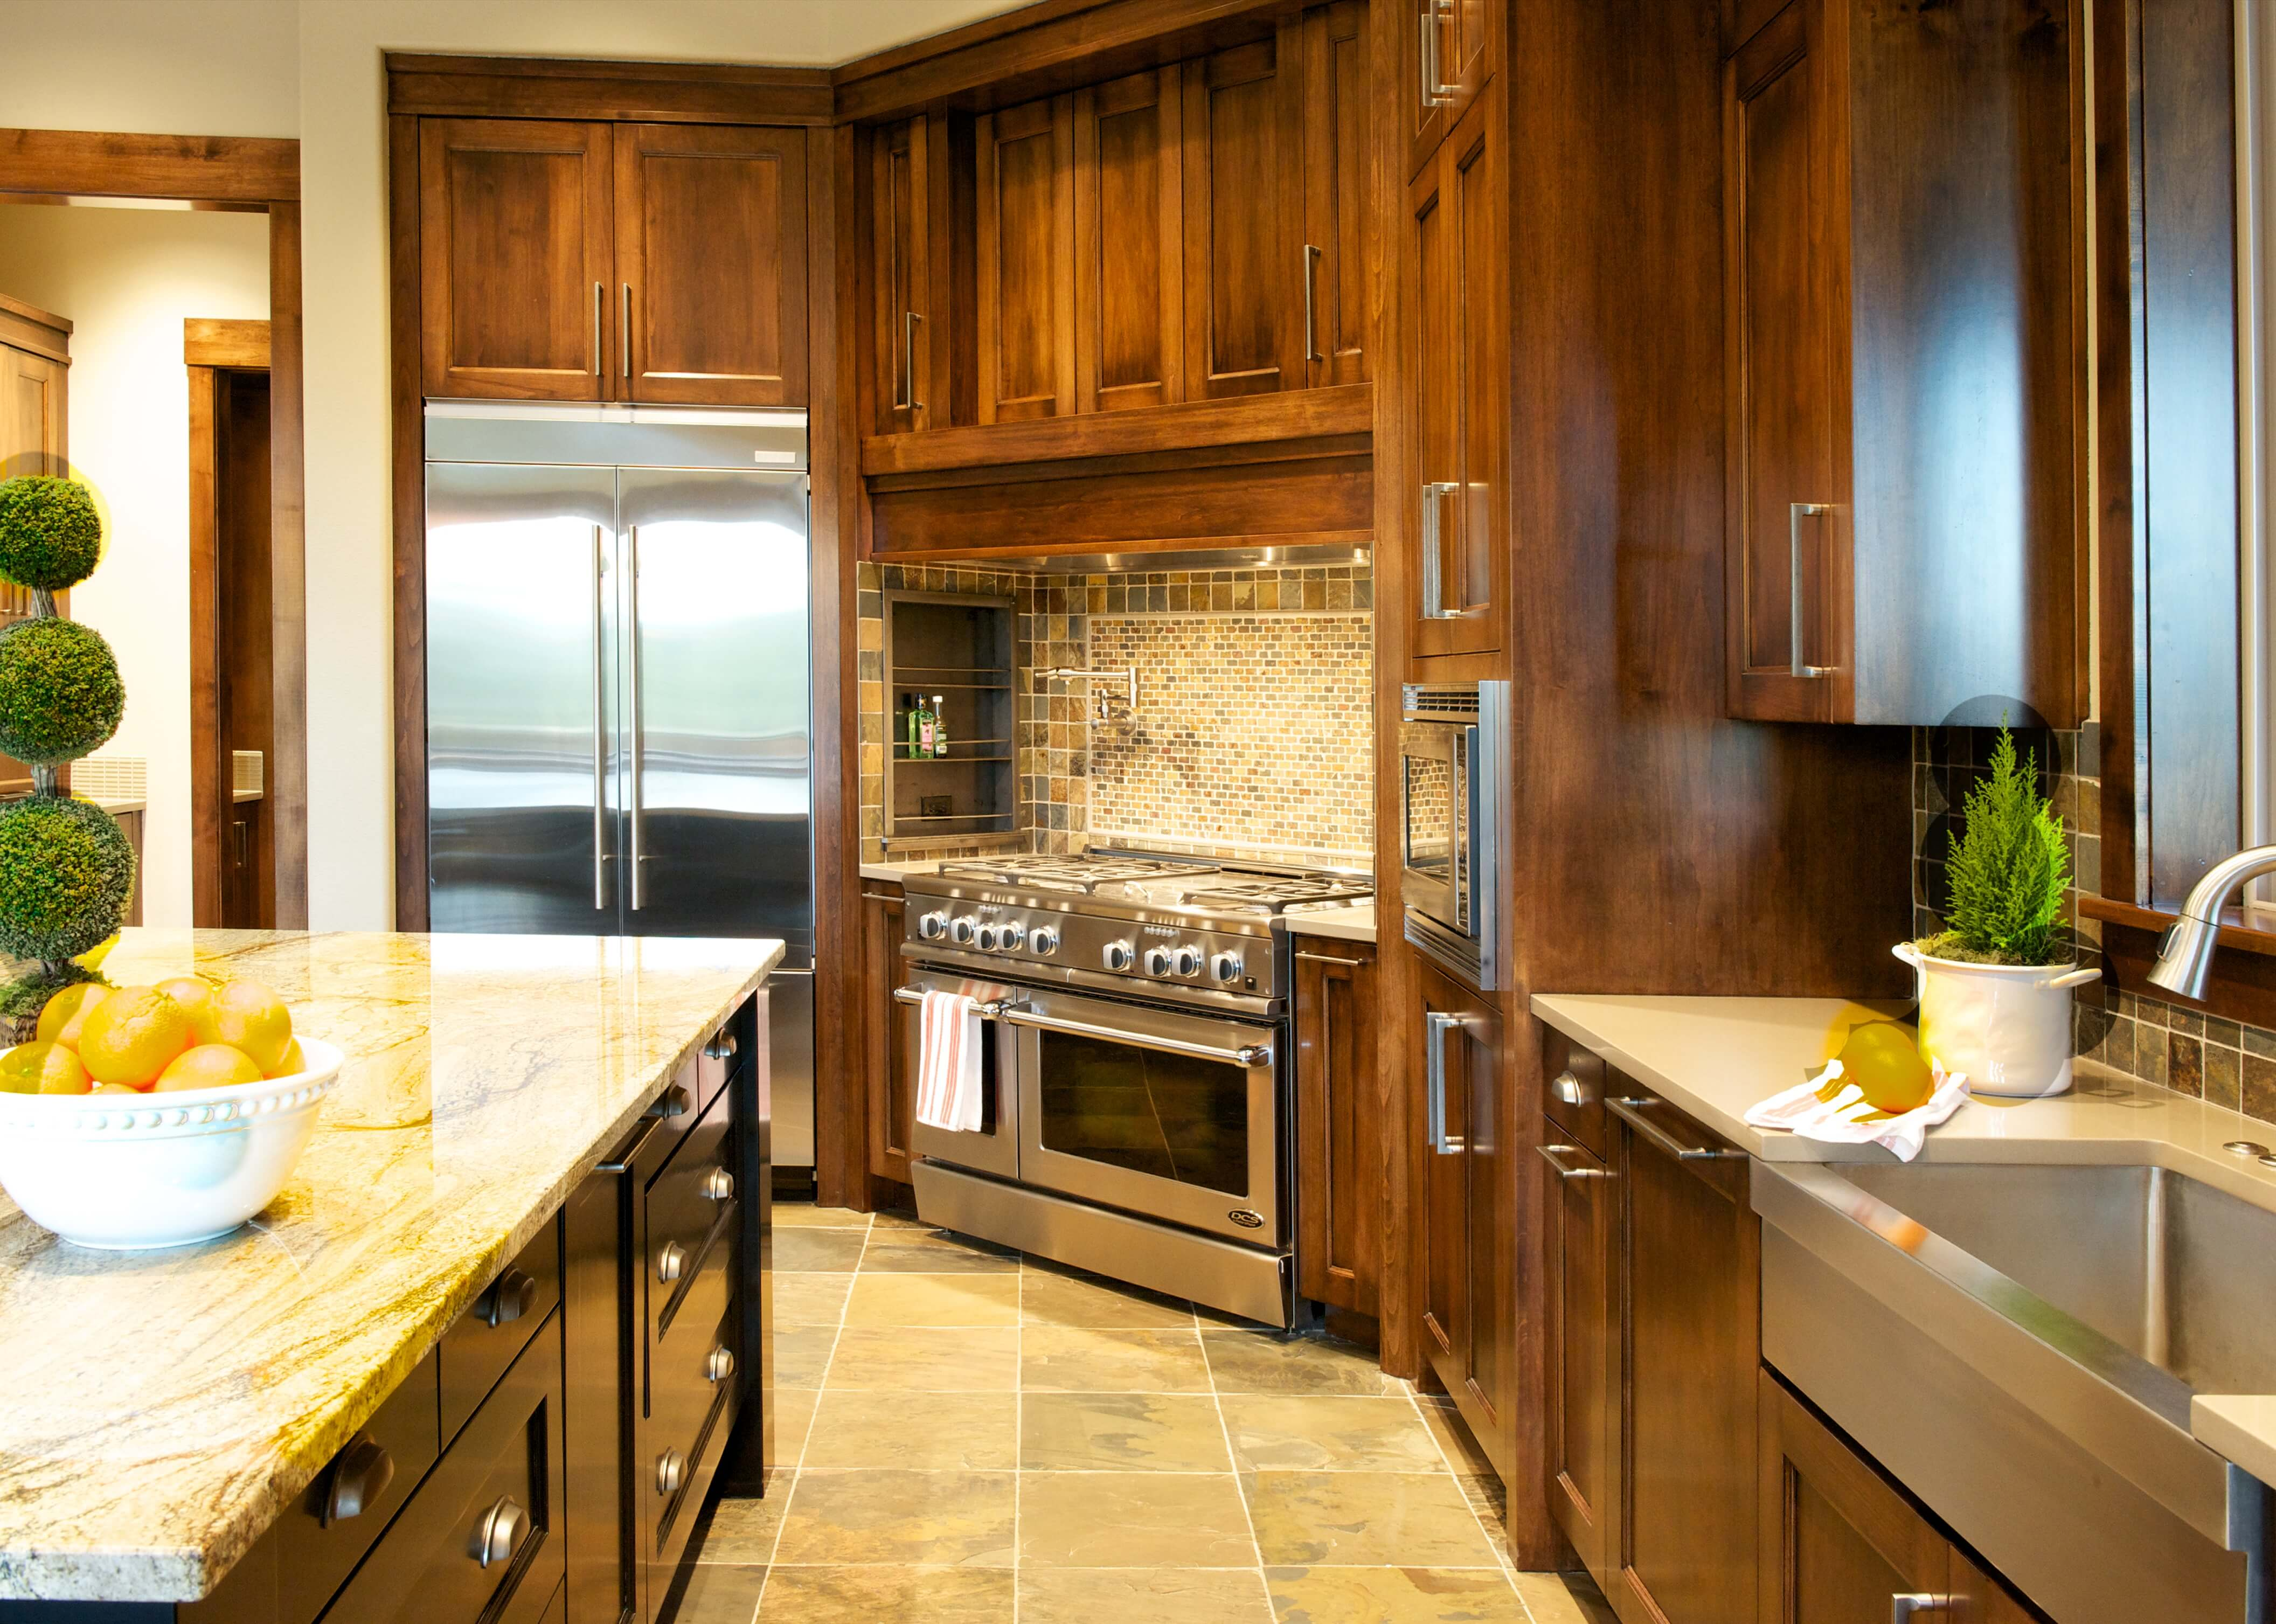 Straight on angle of the kitchen, with detailed view of metal basin sink and matching appliances, with full tile backsplash over range featuring shelving on the side.